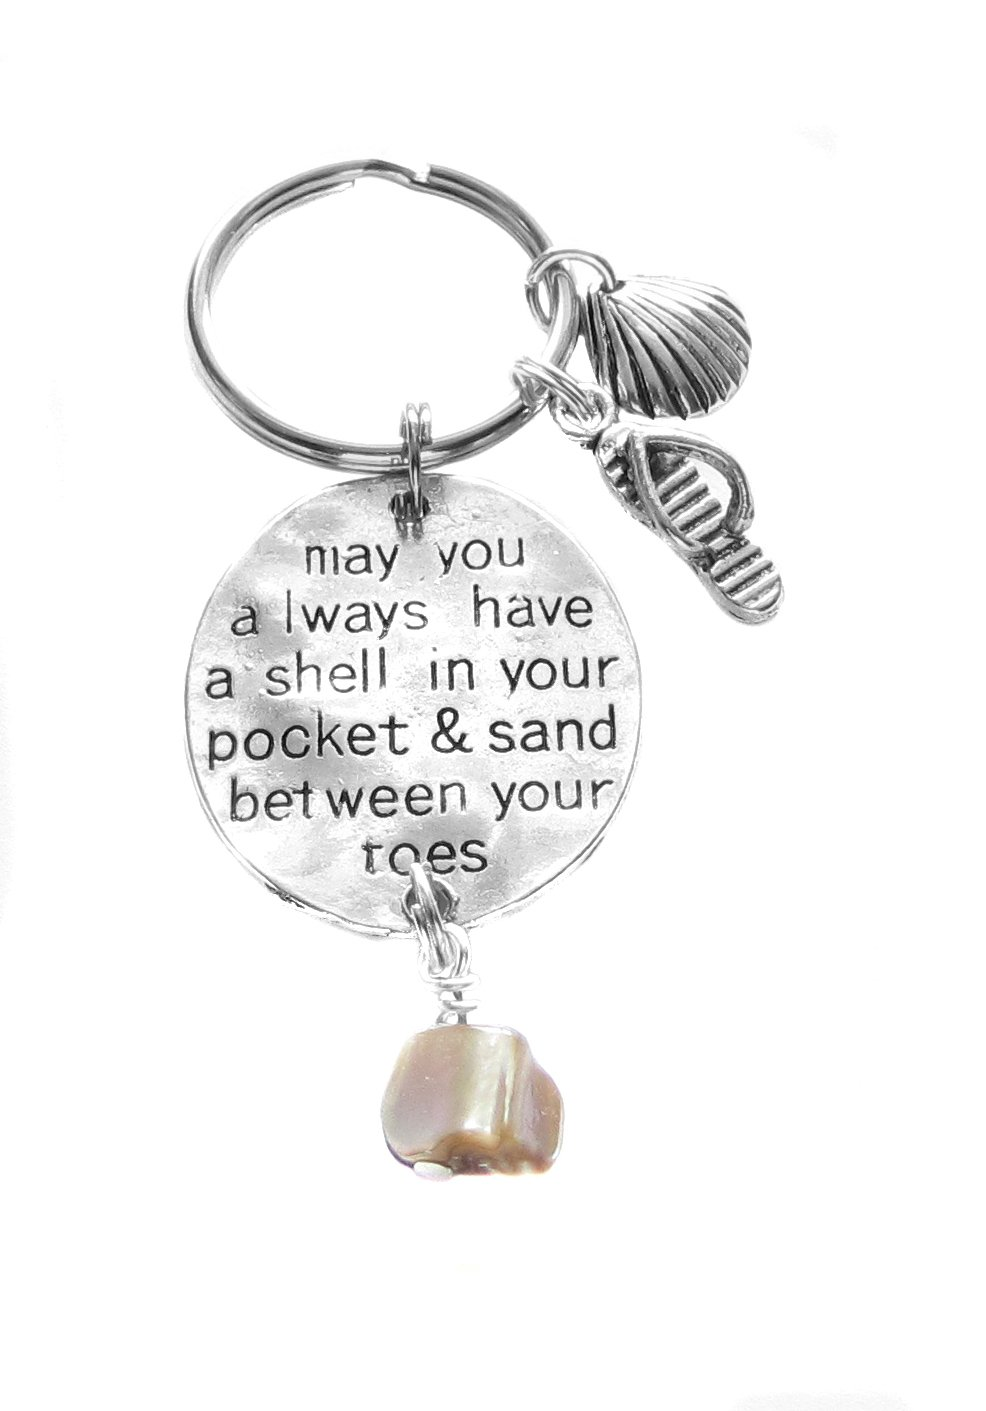 Heart Projects May you always have a shell in your pocket & sand between your toes Key Chain